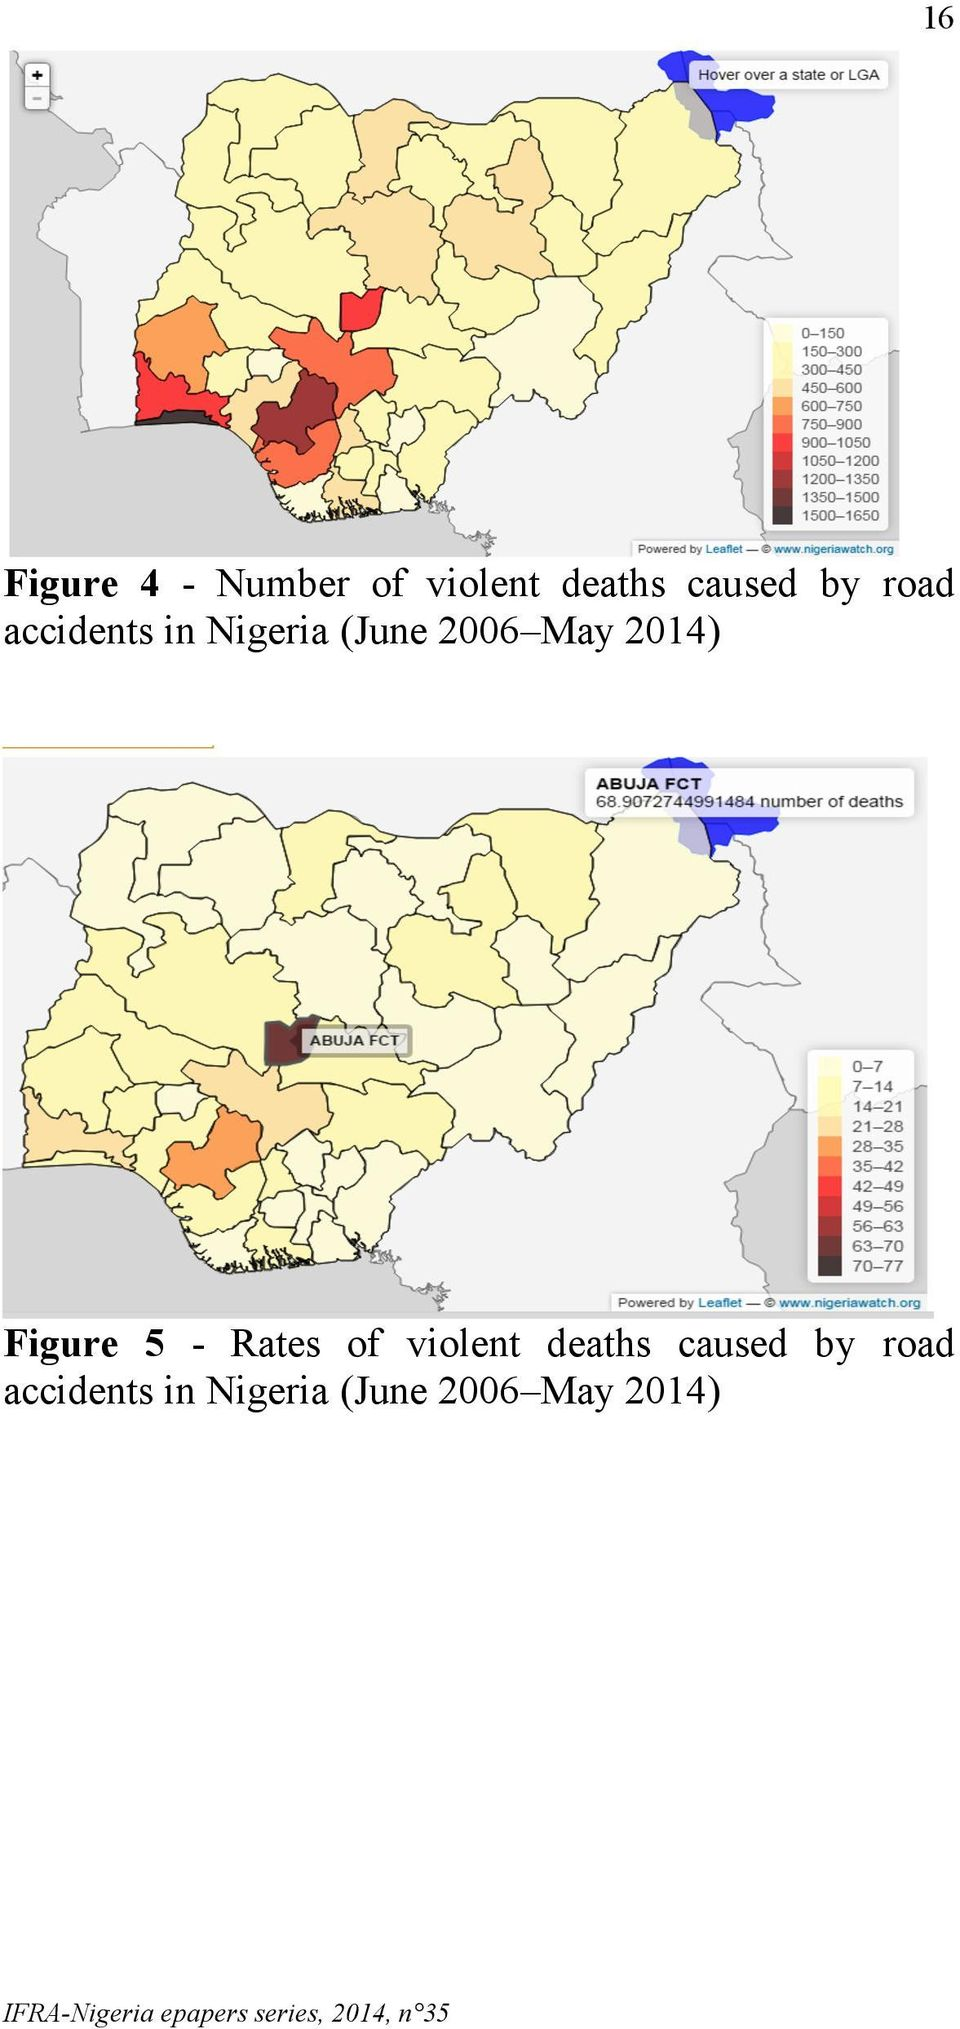 Rates of violent deaths caused by road accidents in